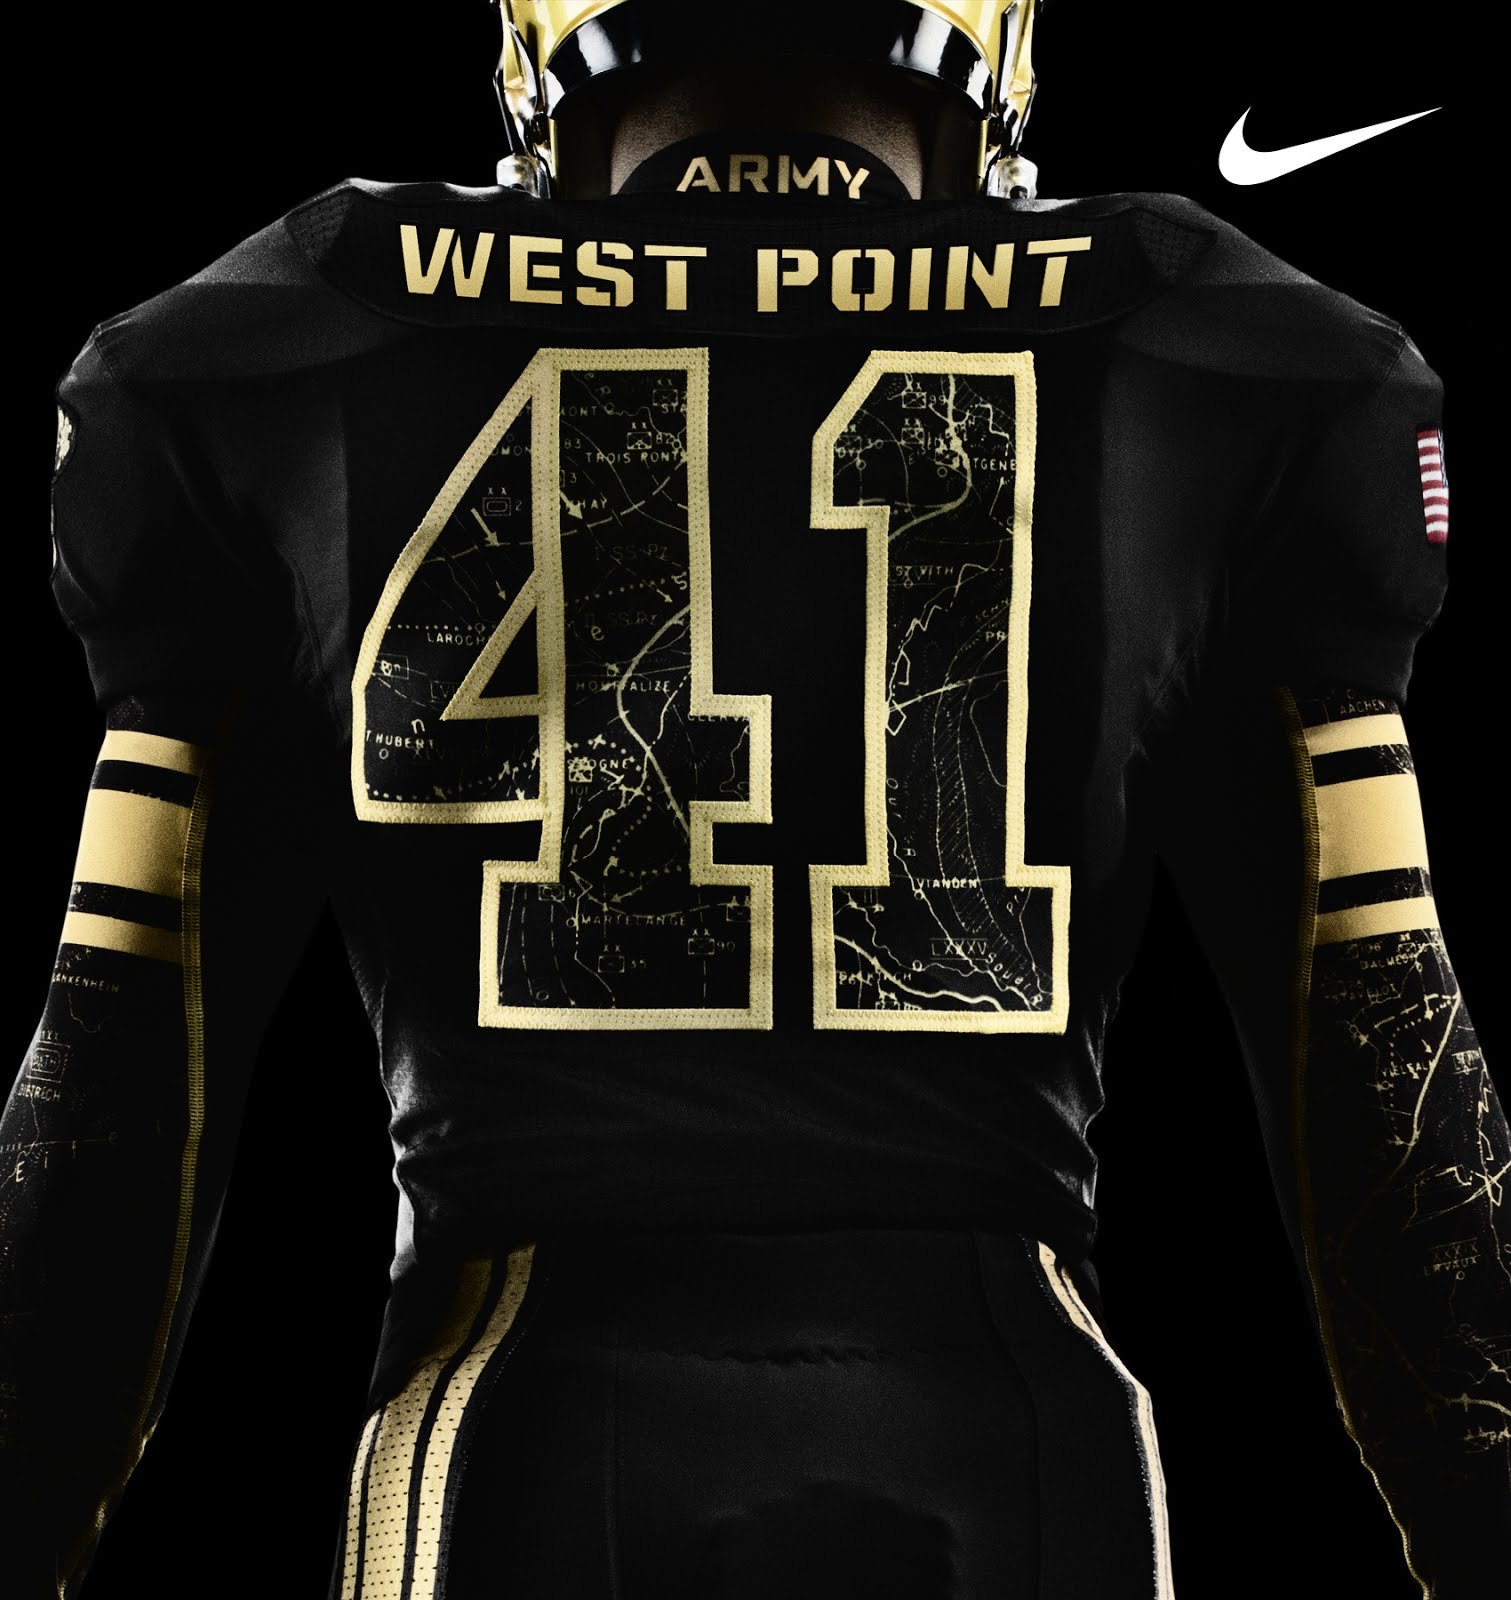 The just revealed Army and Navy football uniforms by Nike have some 1511x1600